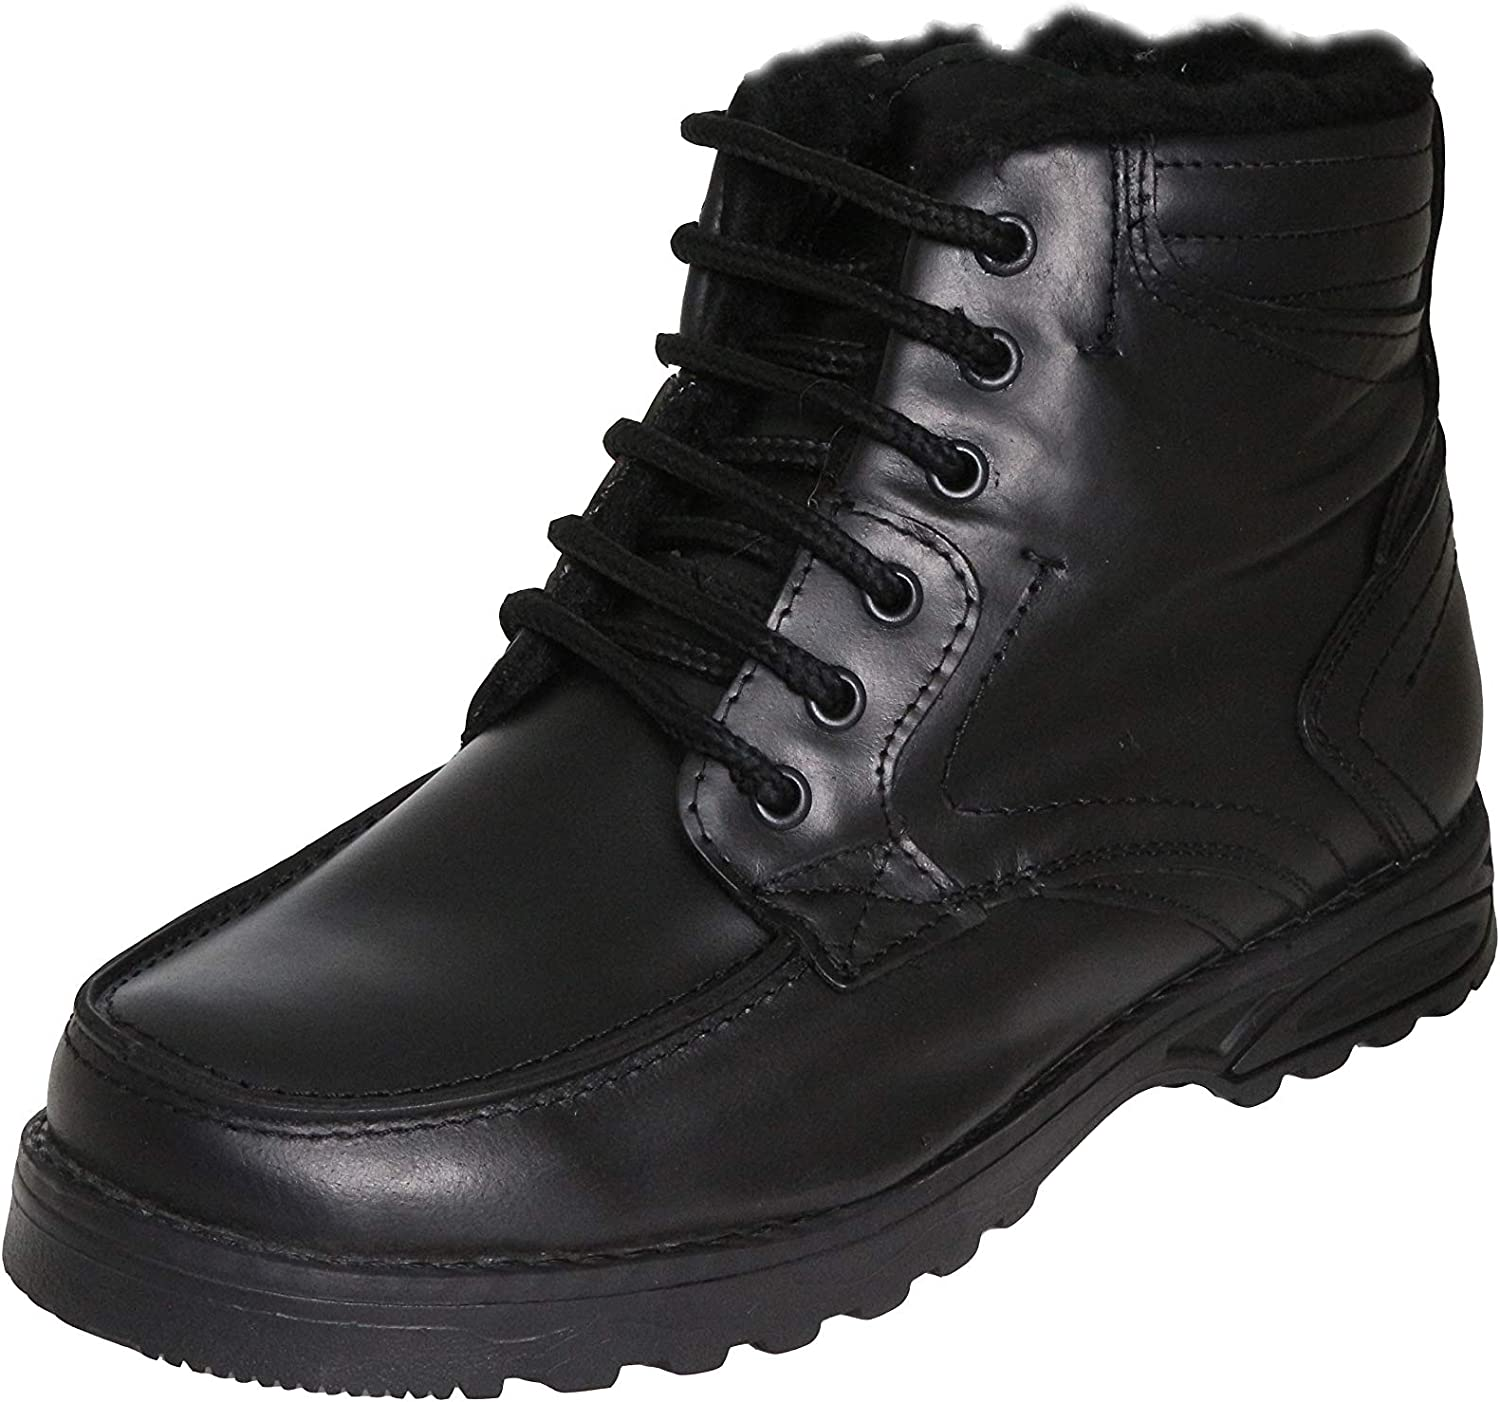 Ks 1803 Men's Boots for Autumn Winter with Warm Lining - Leather - Black